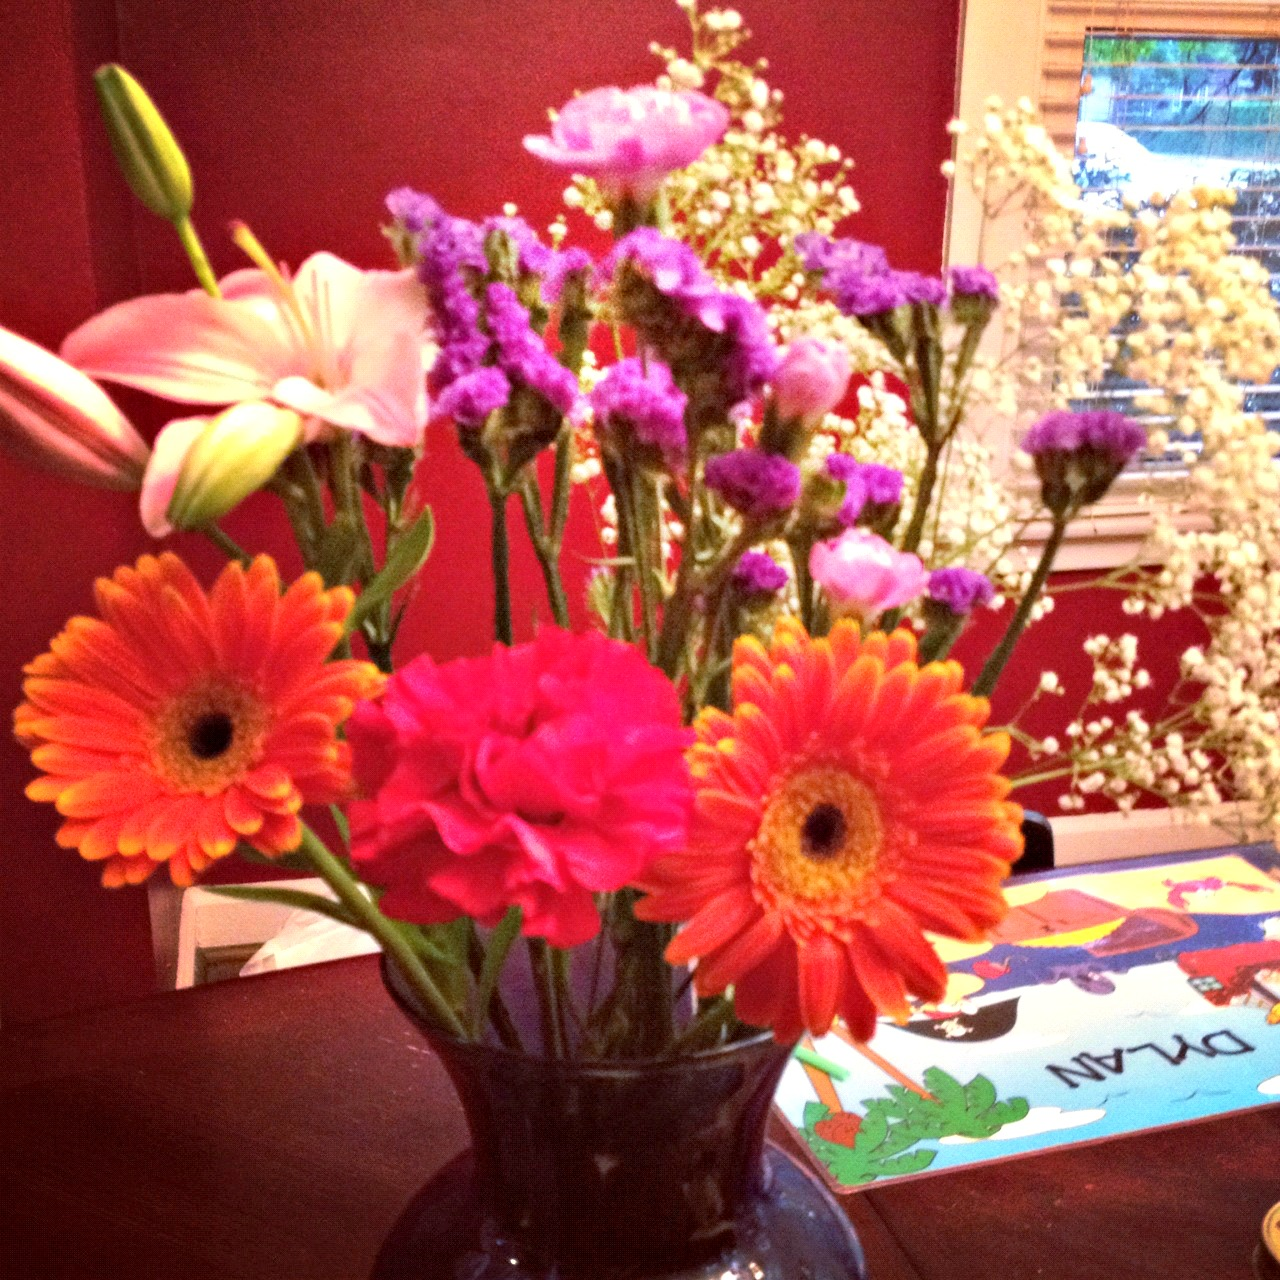 Birthday Bouquet - Angela Amman